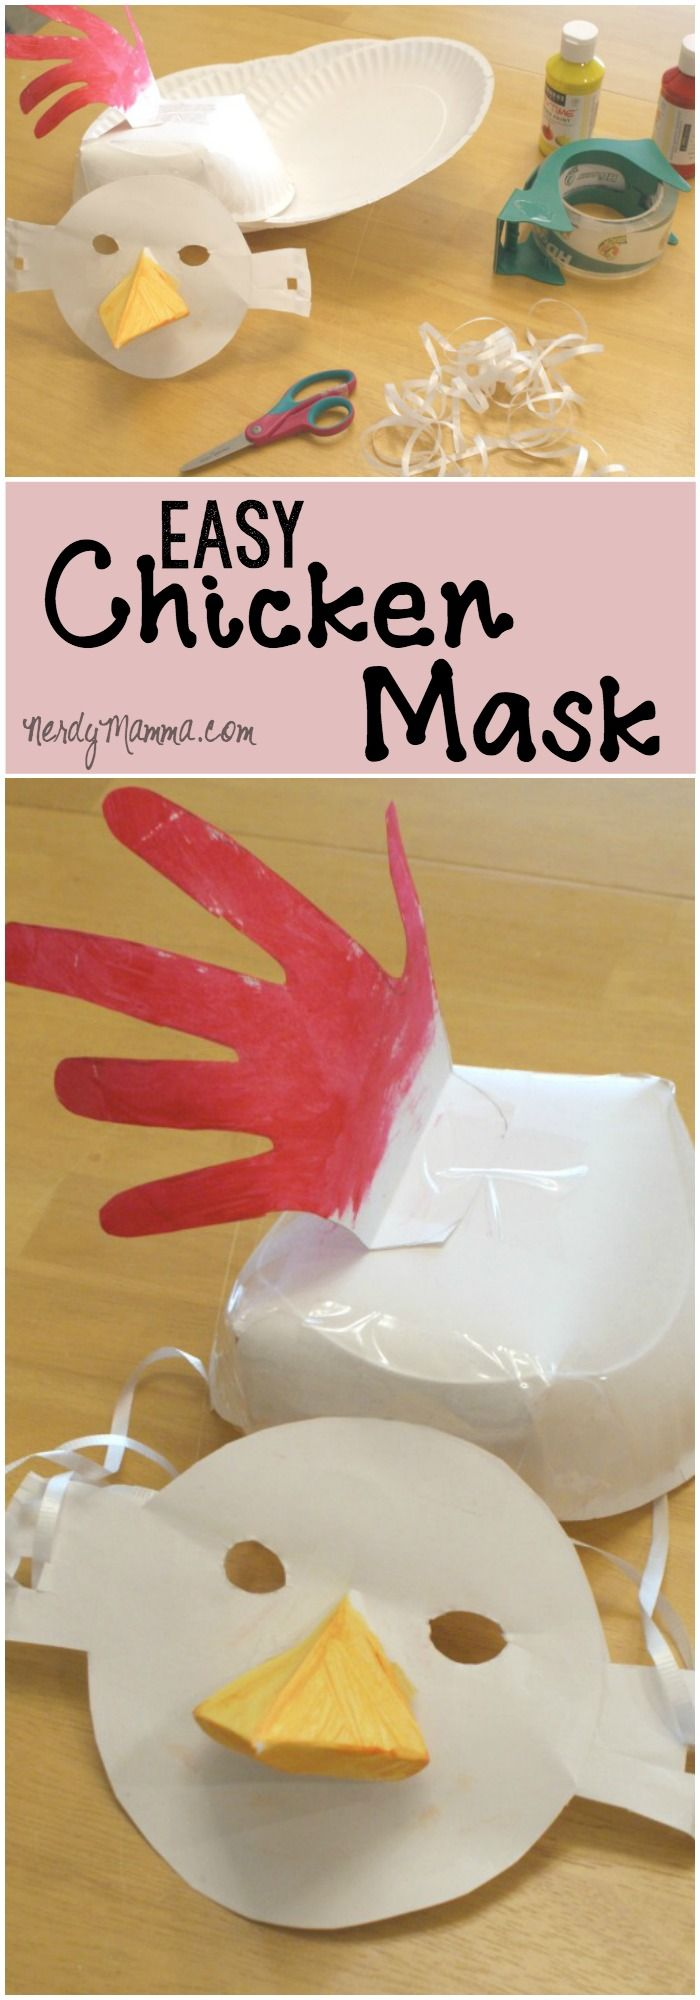 chicken mask is so silly! | KBN Crafts for Kids | Pinterest | Fun